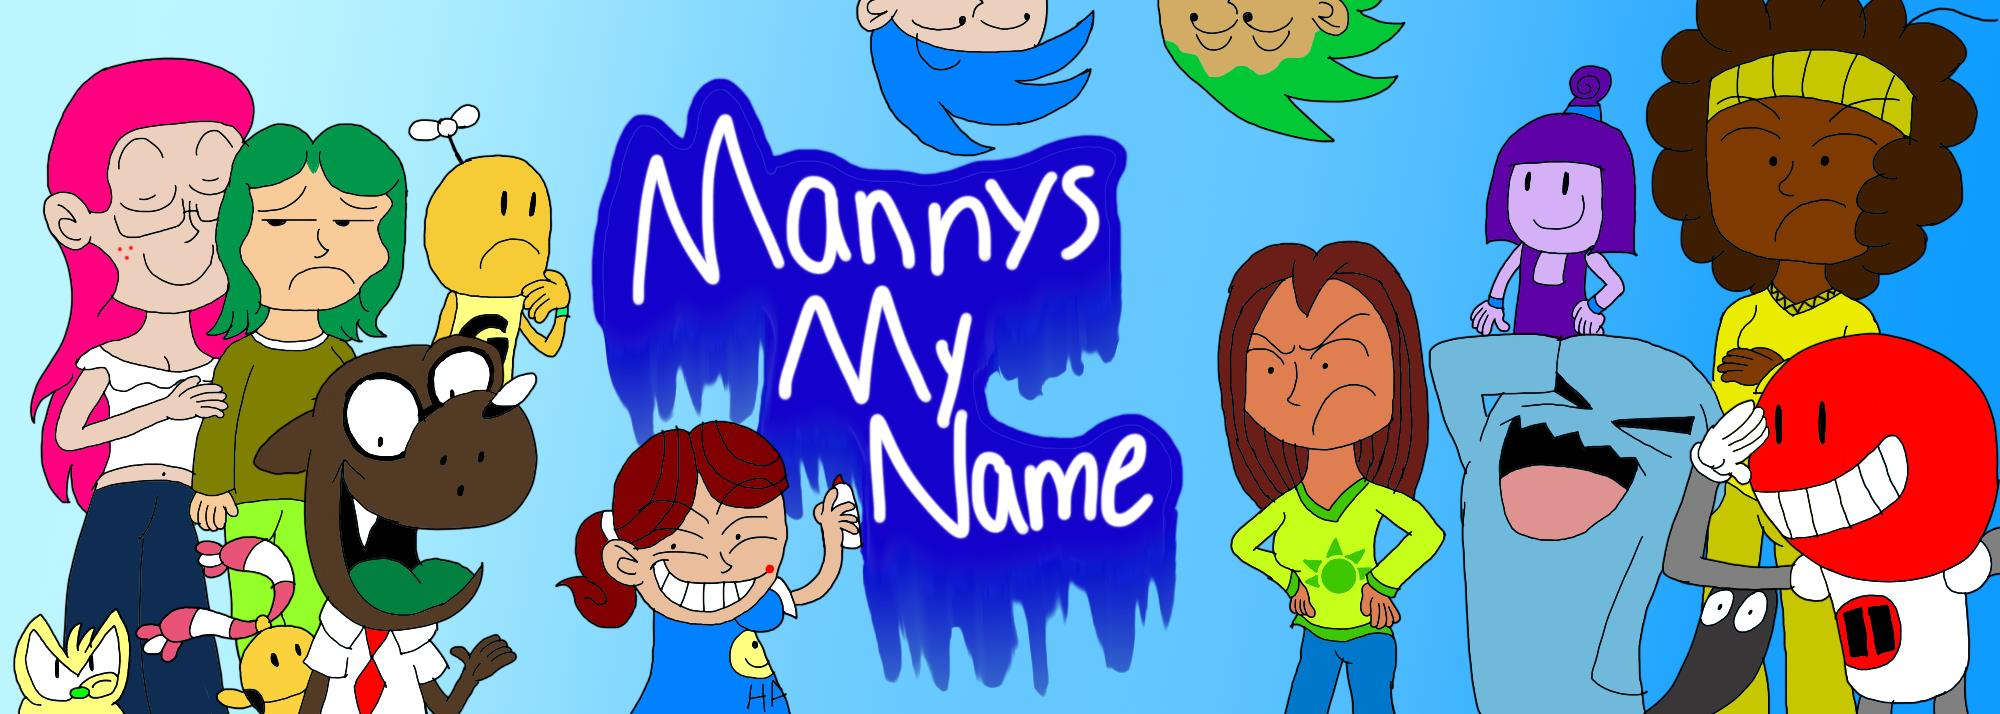 mannysmyname's Profile Picture